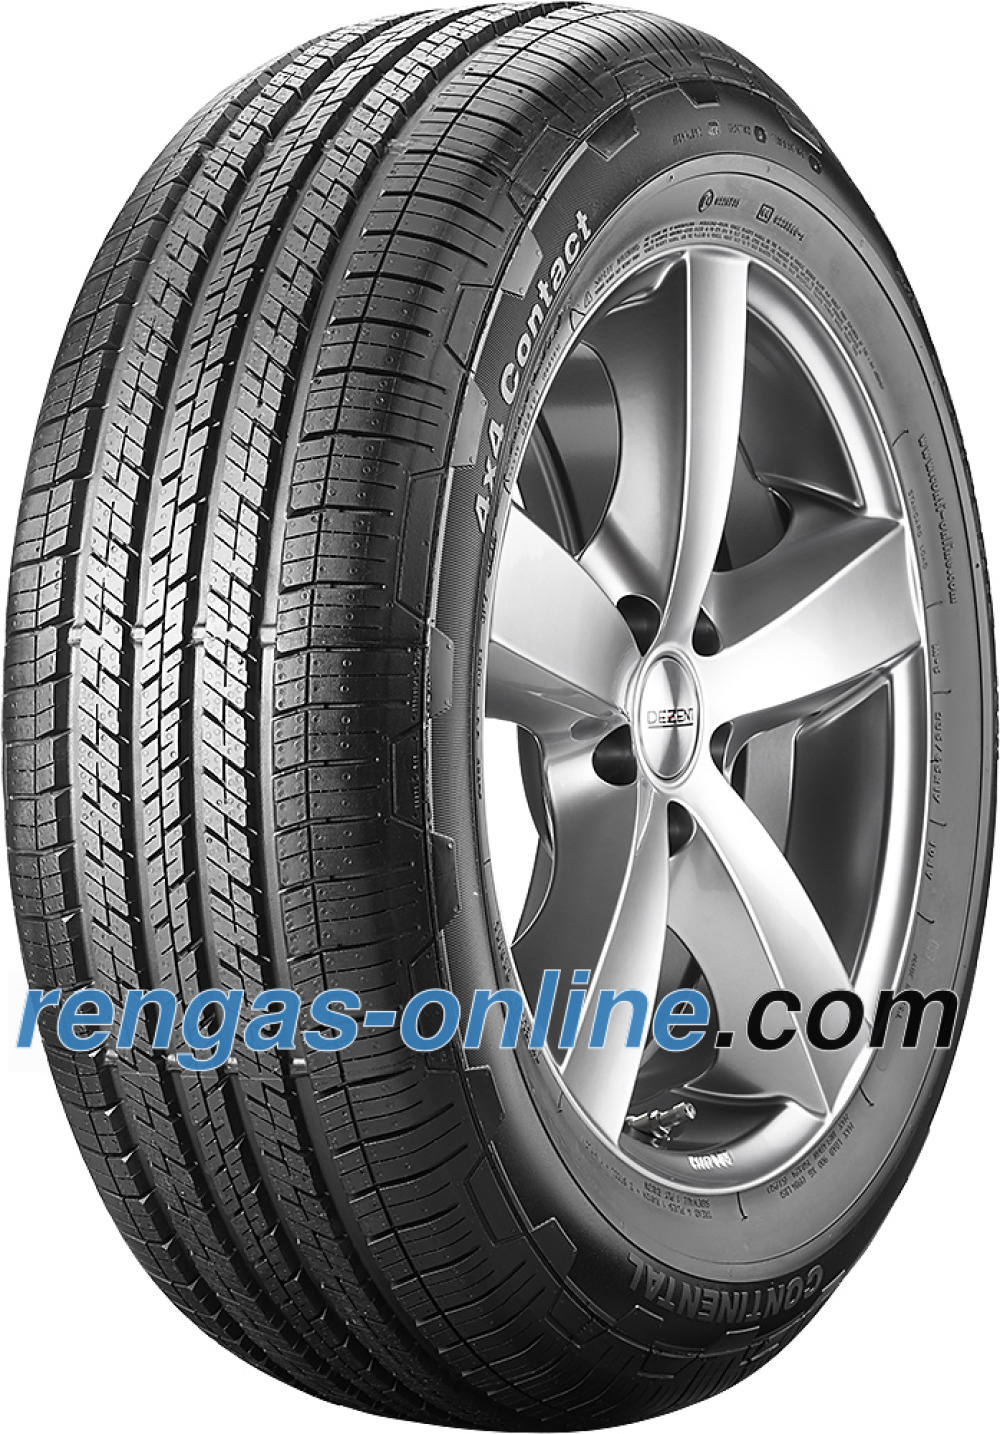 continental-4x4-contact-20570-r15-96t